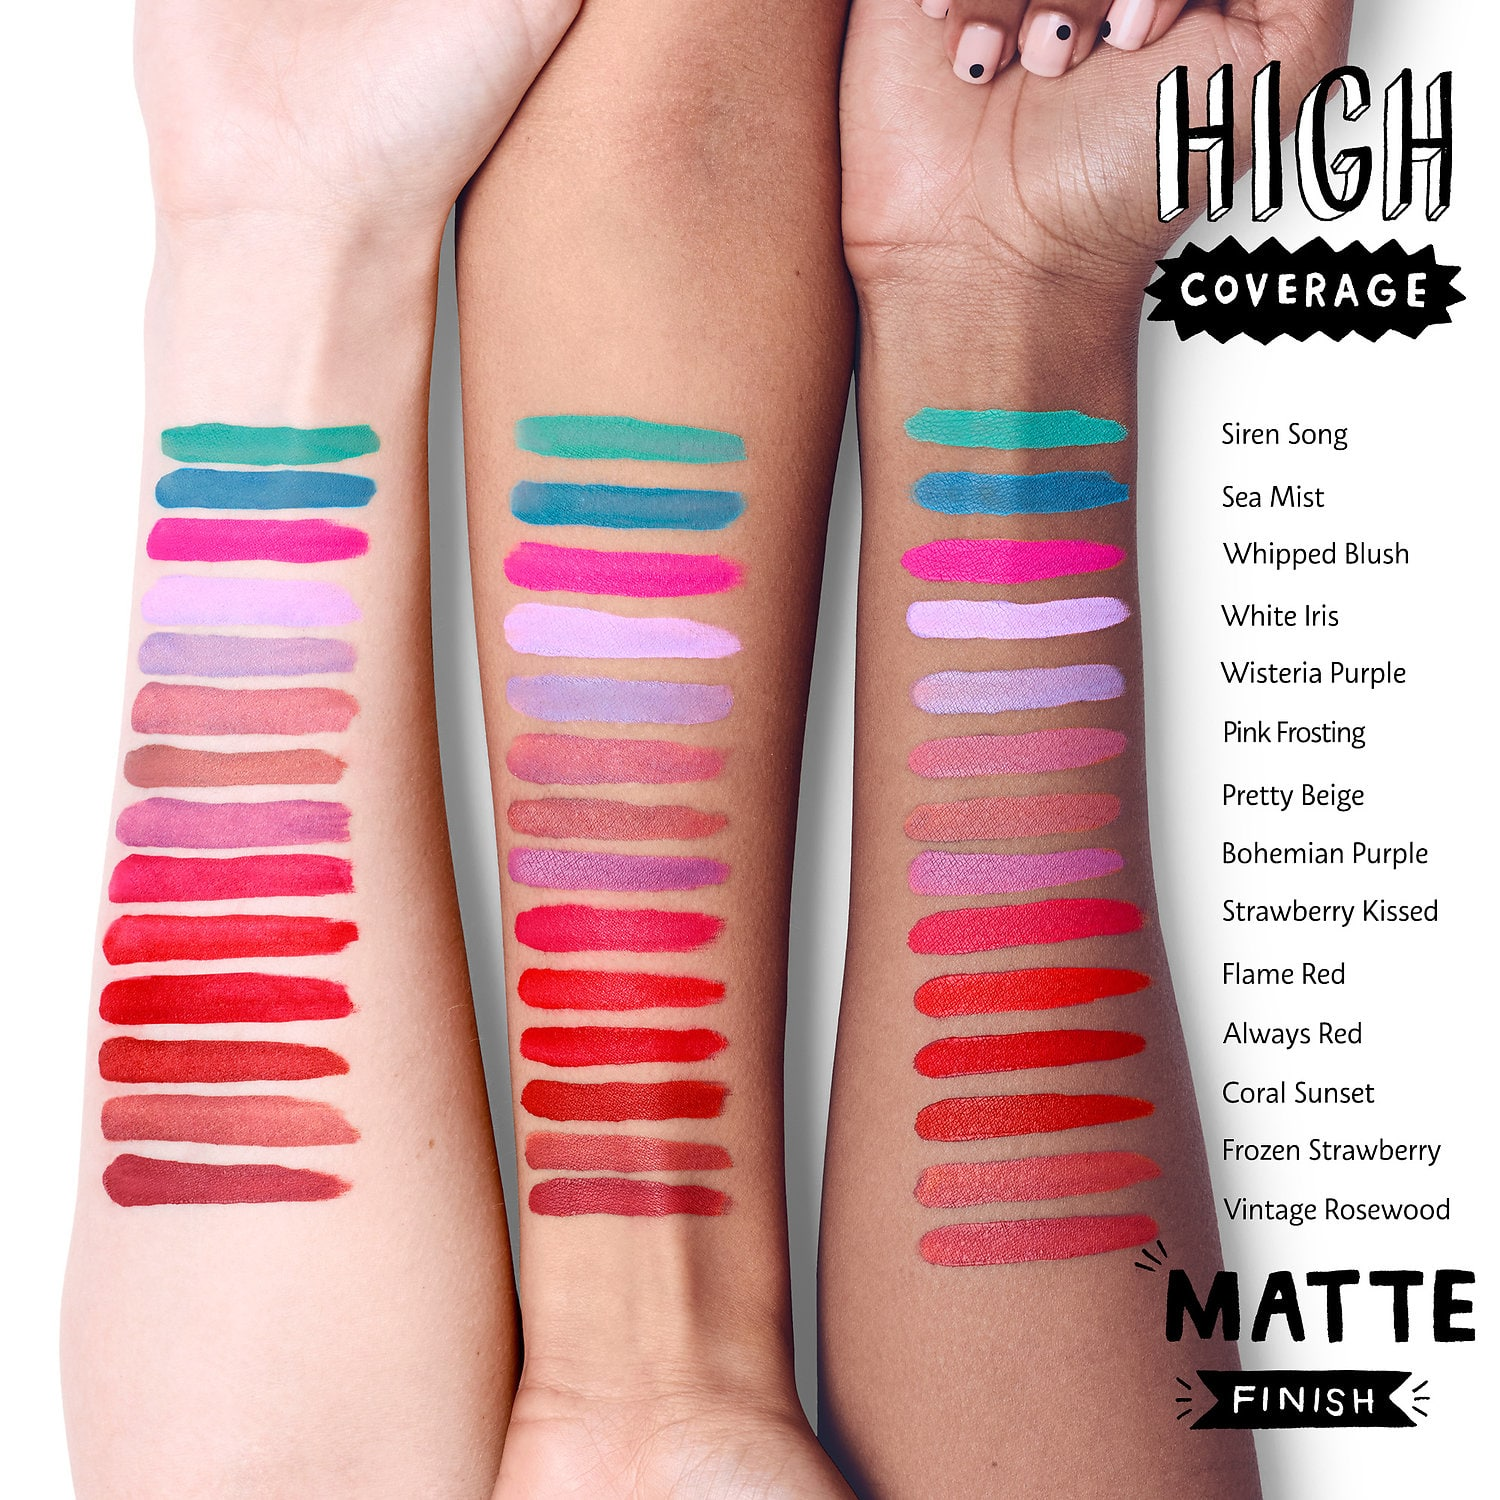 Cream-Lip-Stain-Liquid-Lipstick-swatch-comparativi